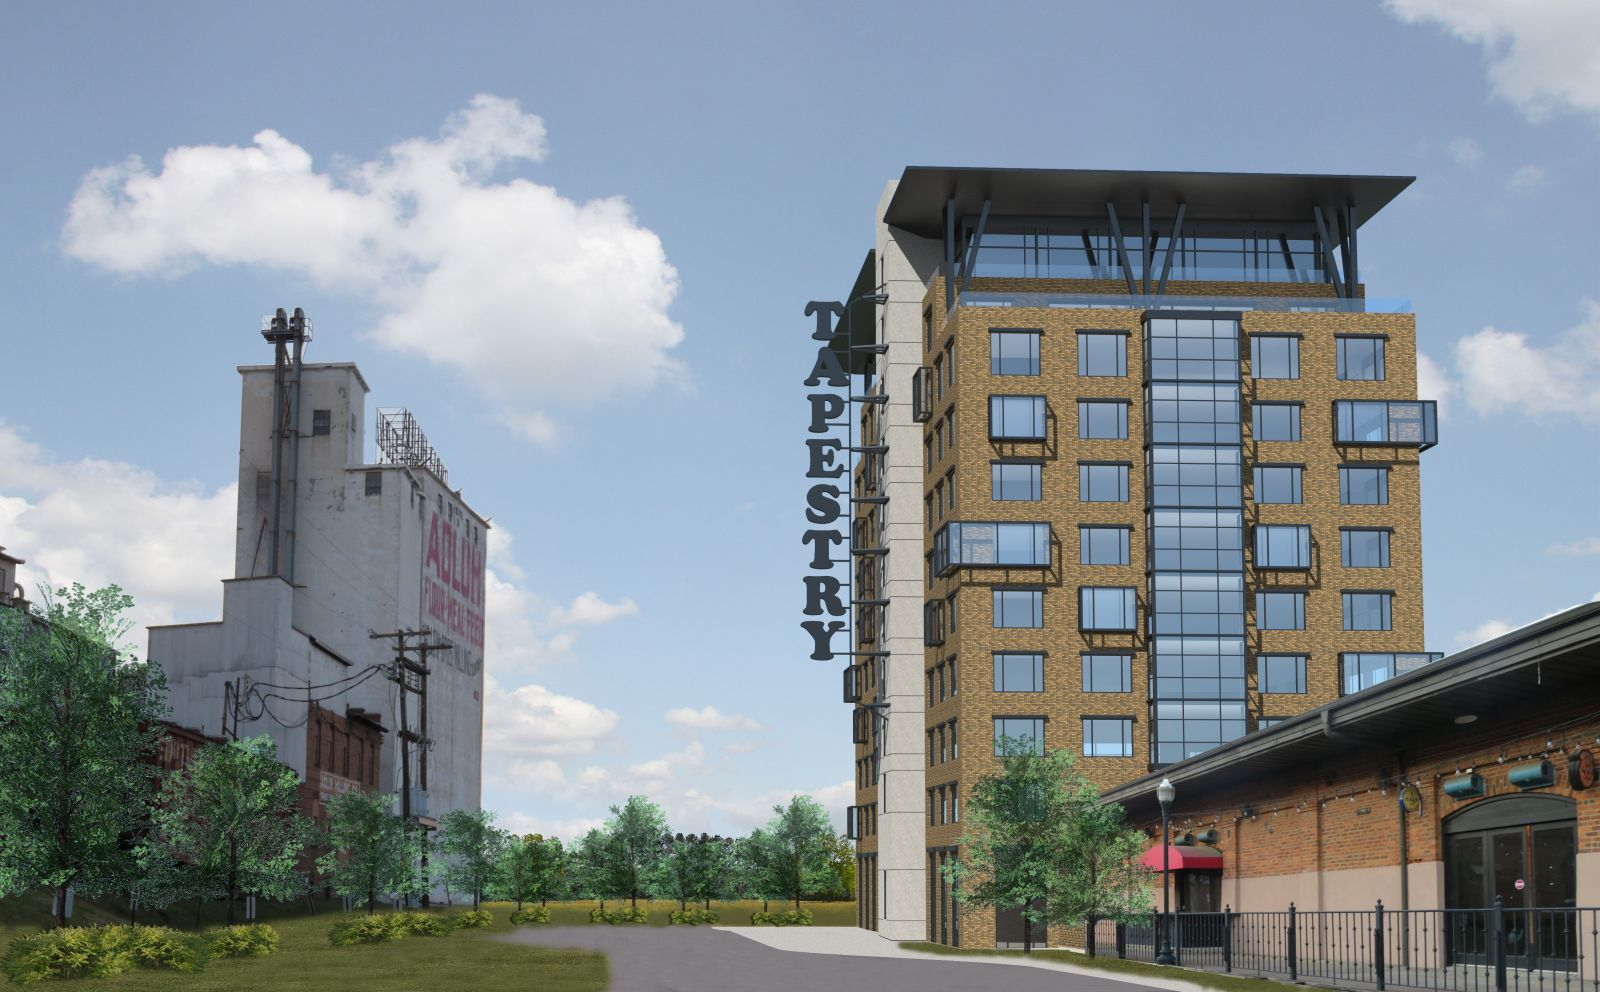 A rendering of the proposed Hotel Anthem at 800 Gervais St., an 11-story hotel that would be part of the Hilton Tapestry boutique brand. (Rendering provided by Kollin Altomare Architects)